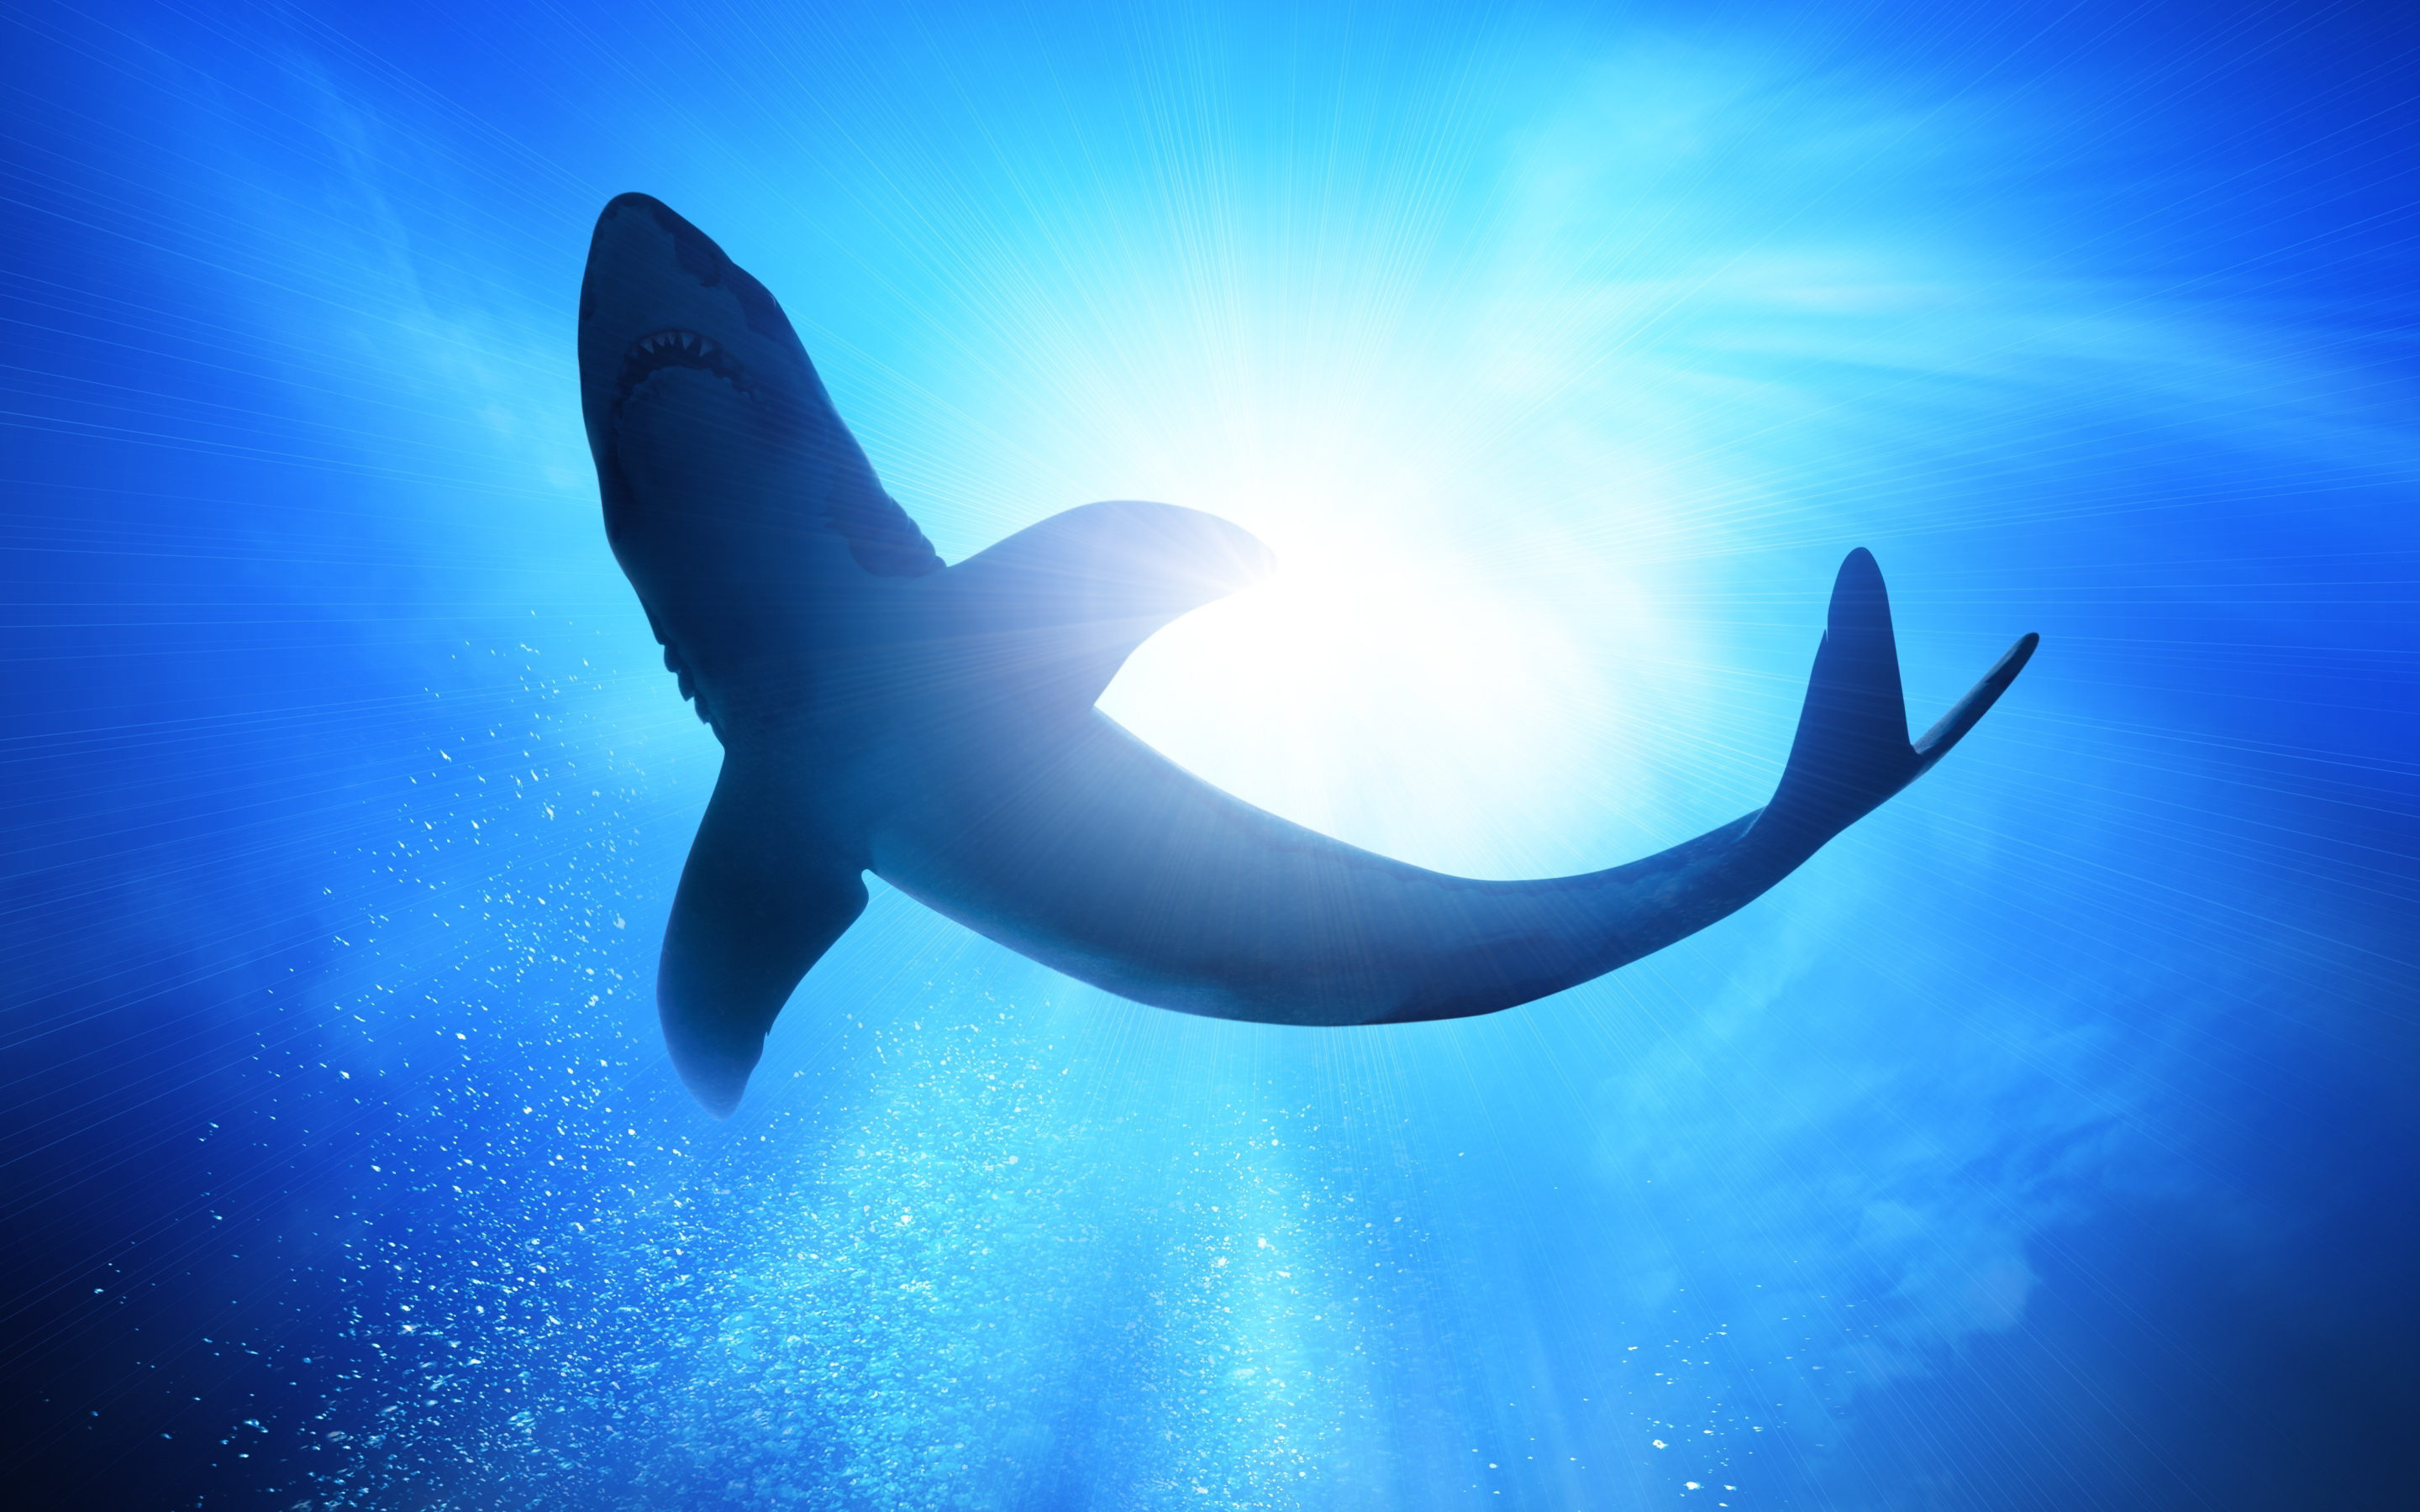 download wallpaper shark 1600 - photo #15